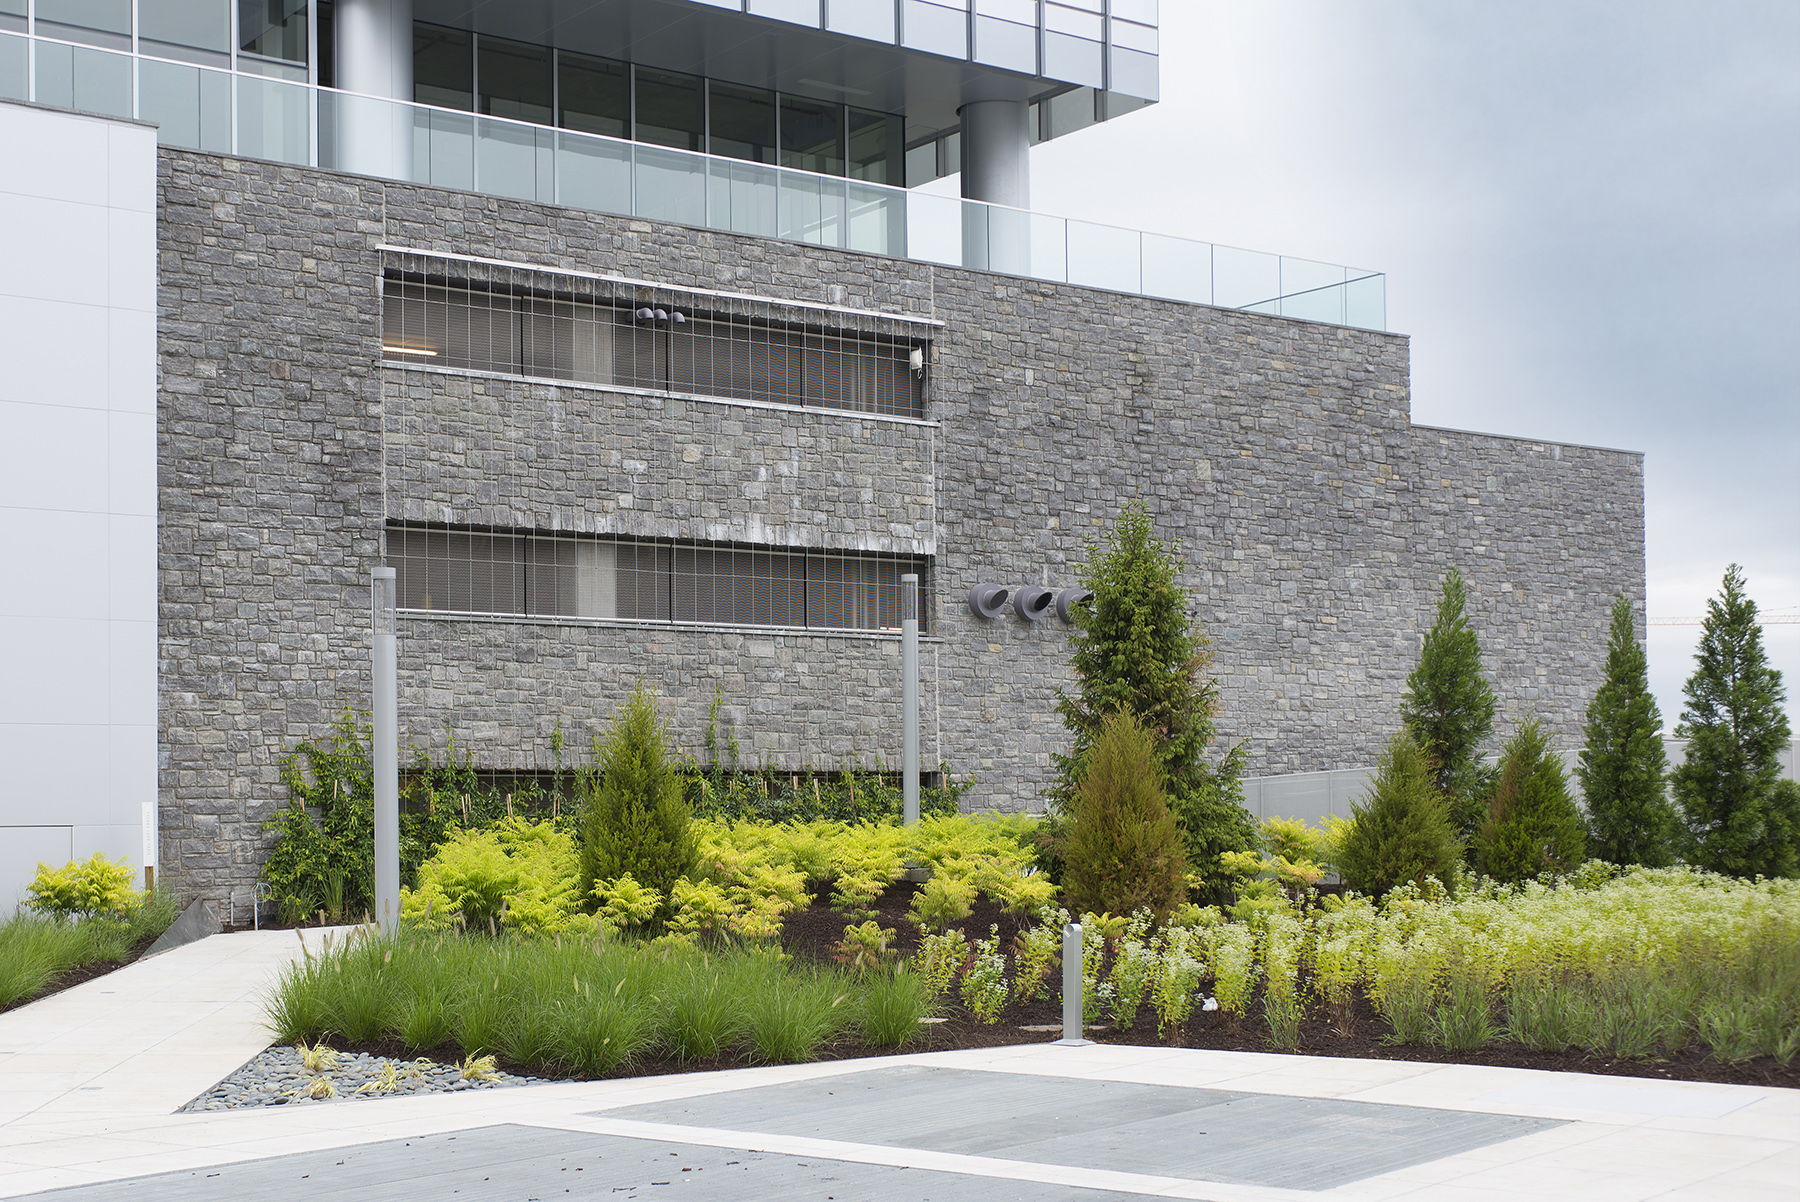 gray stone building with flower beds